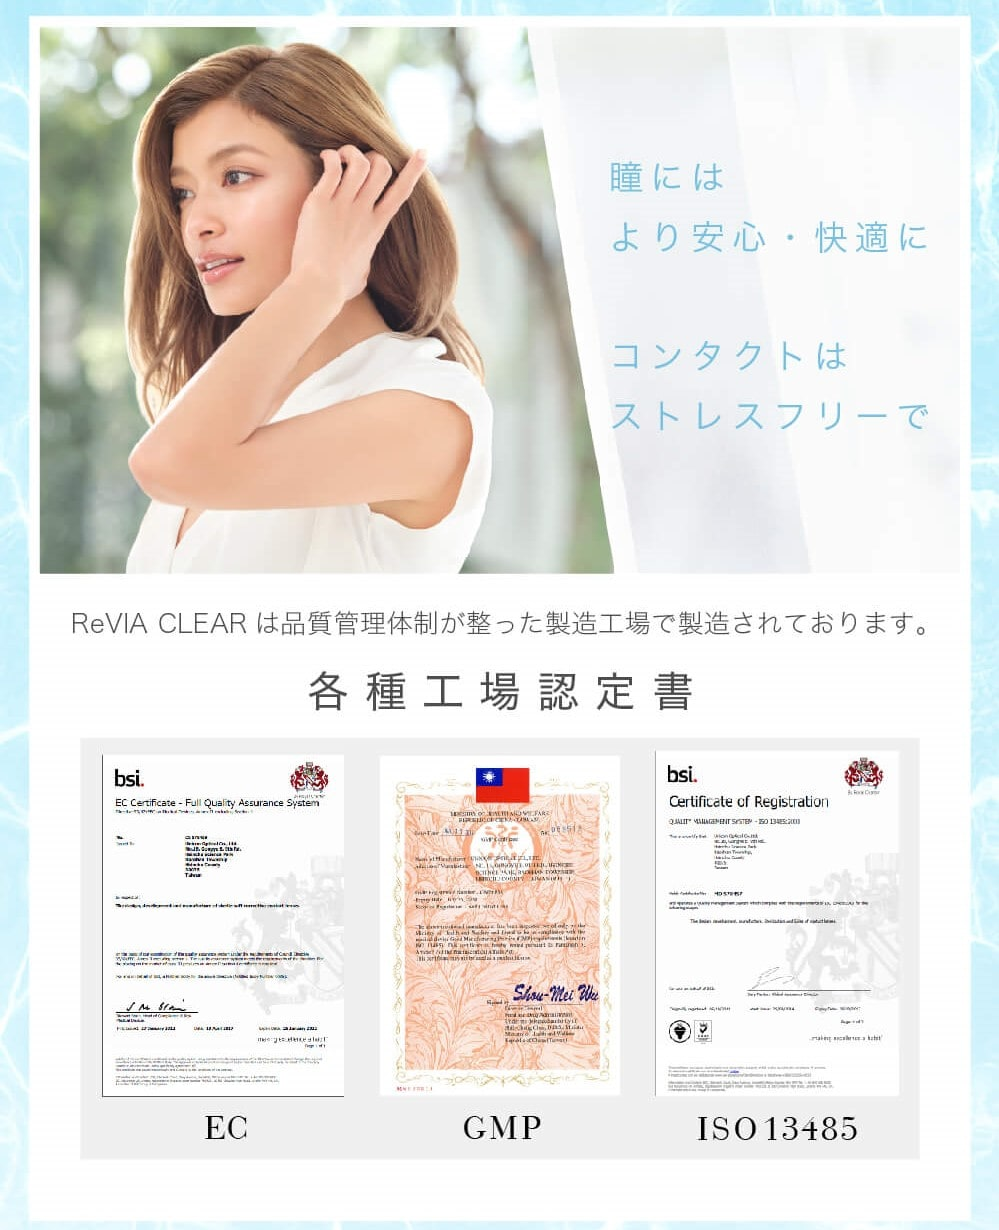 ReVIA CLEAR 1day工場認定書